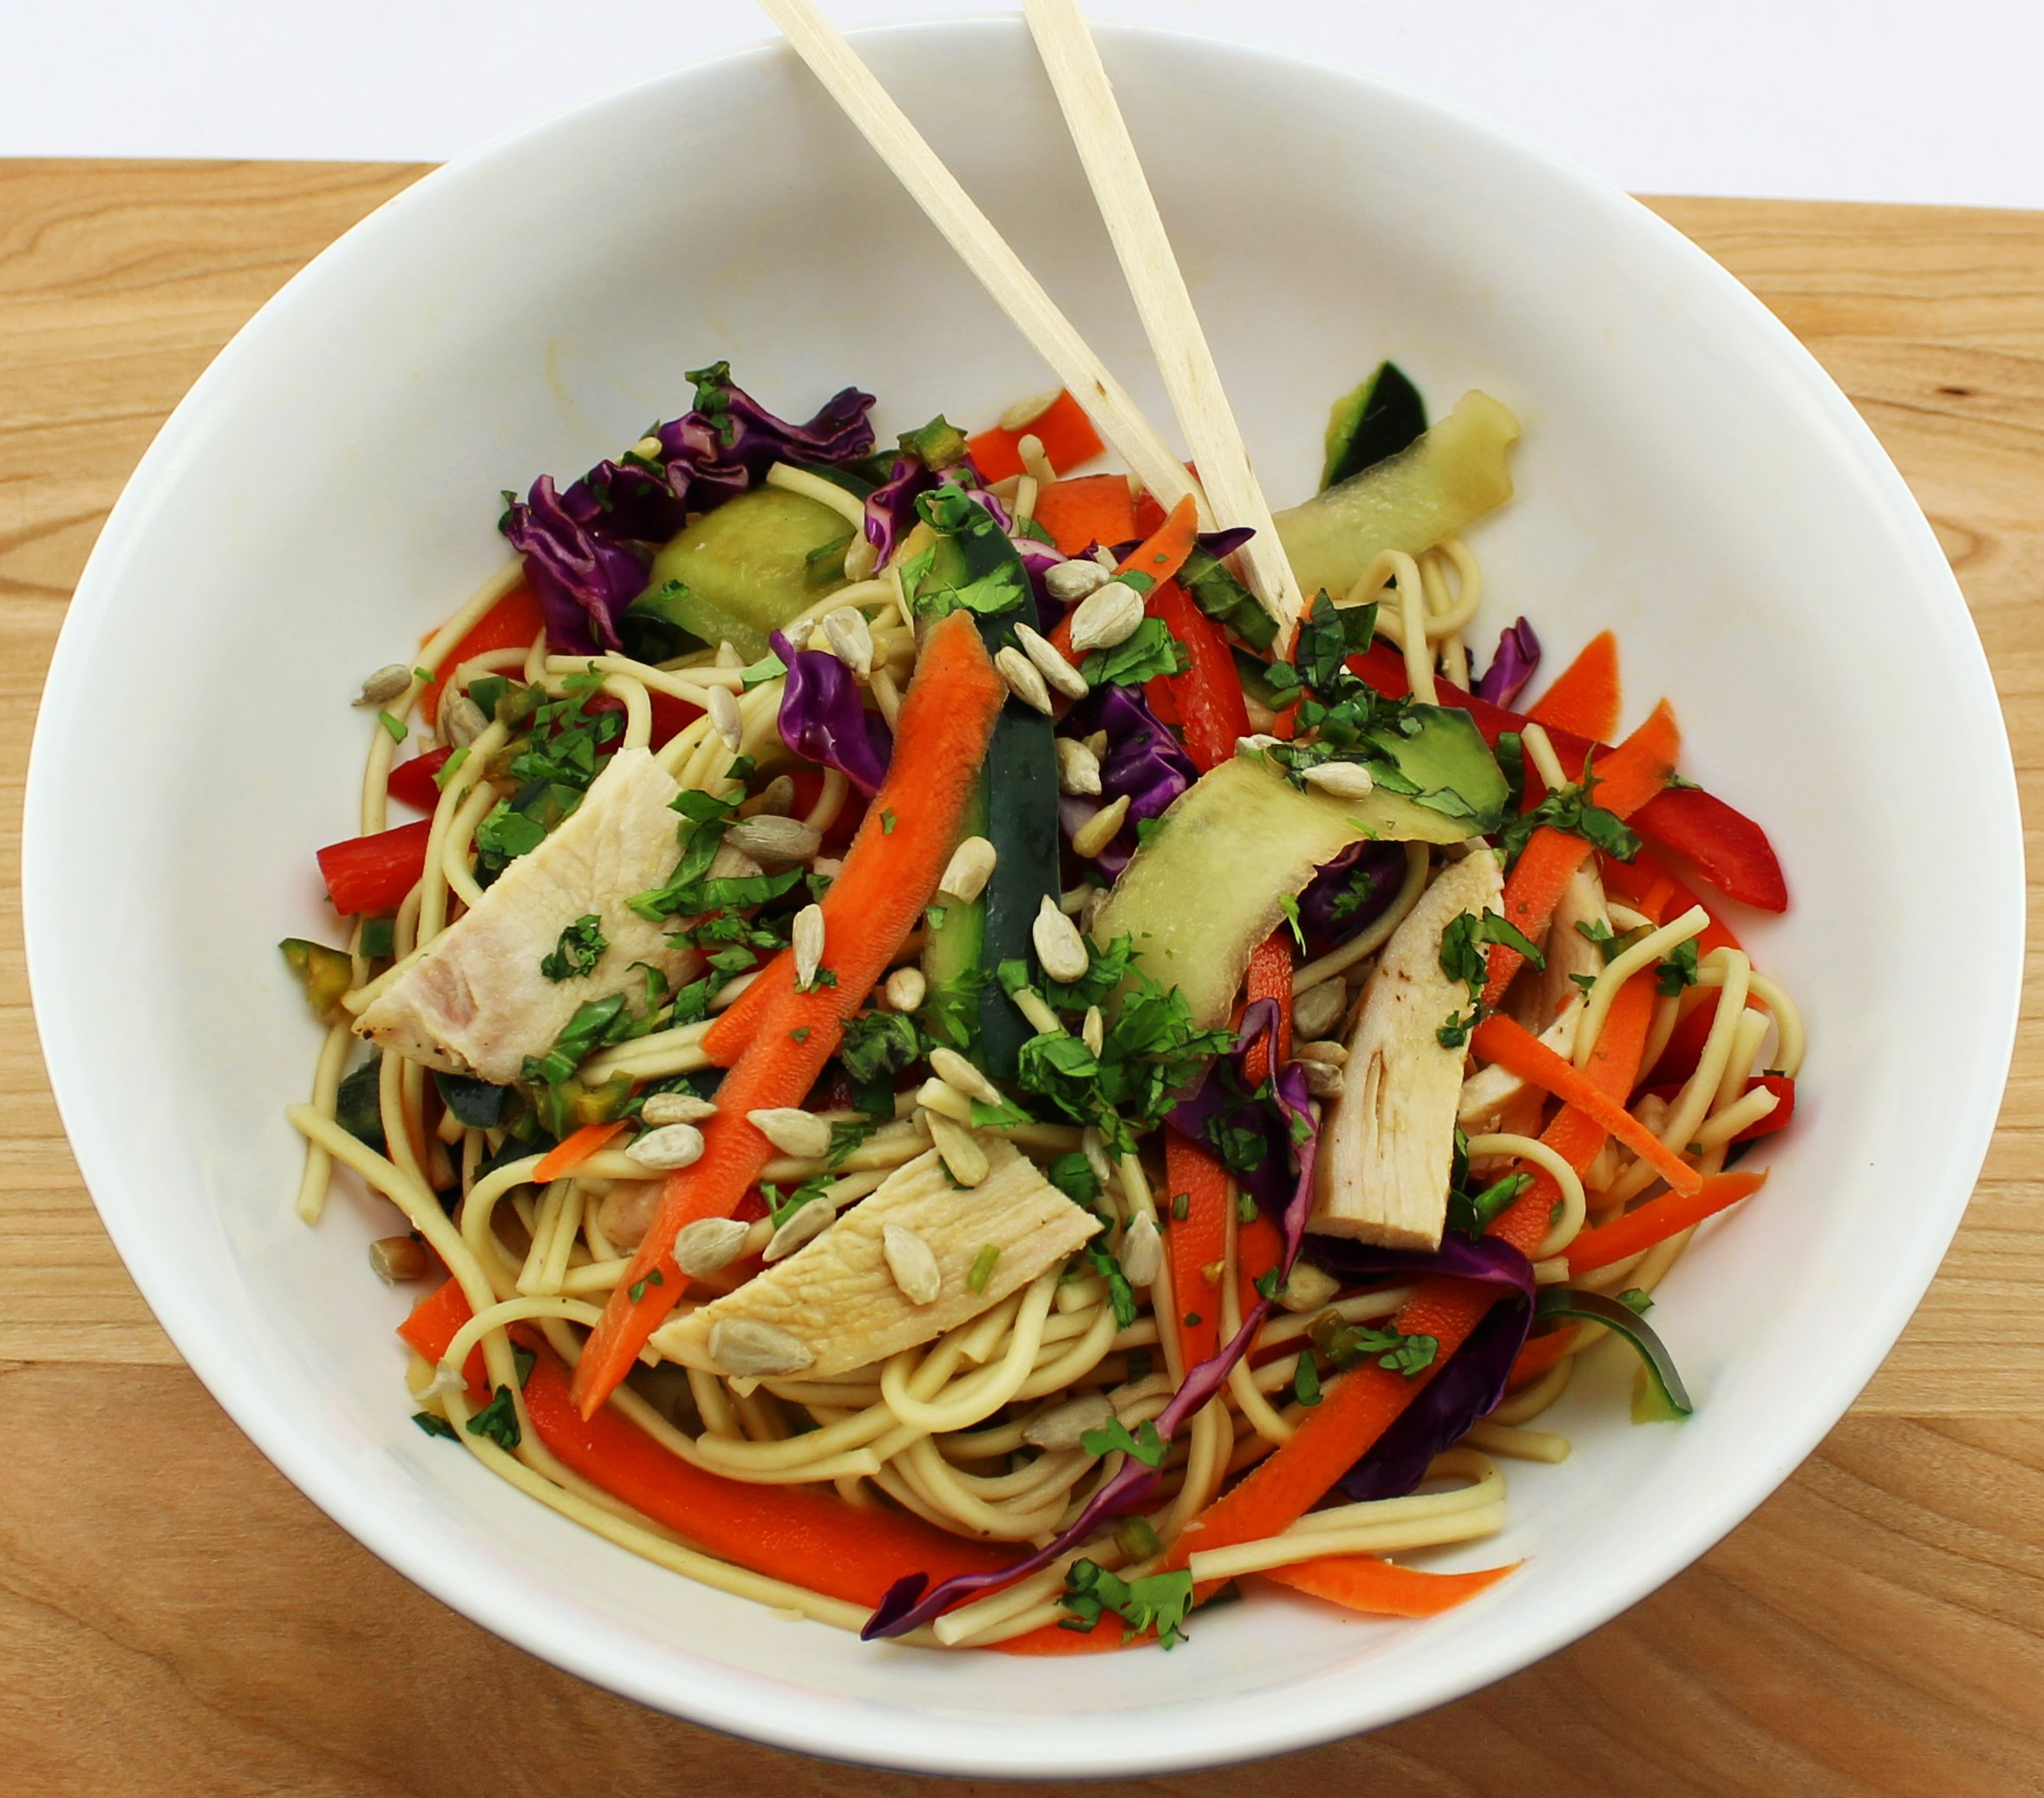 Salad with Asian noodles and vegetables.